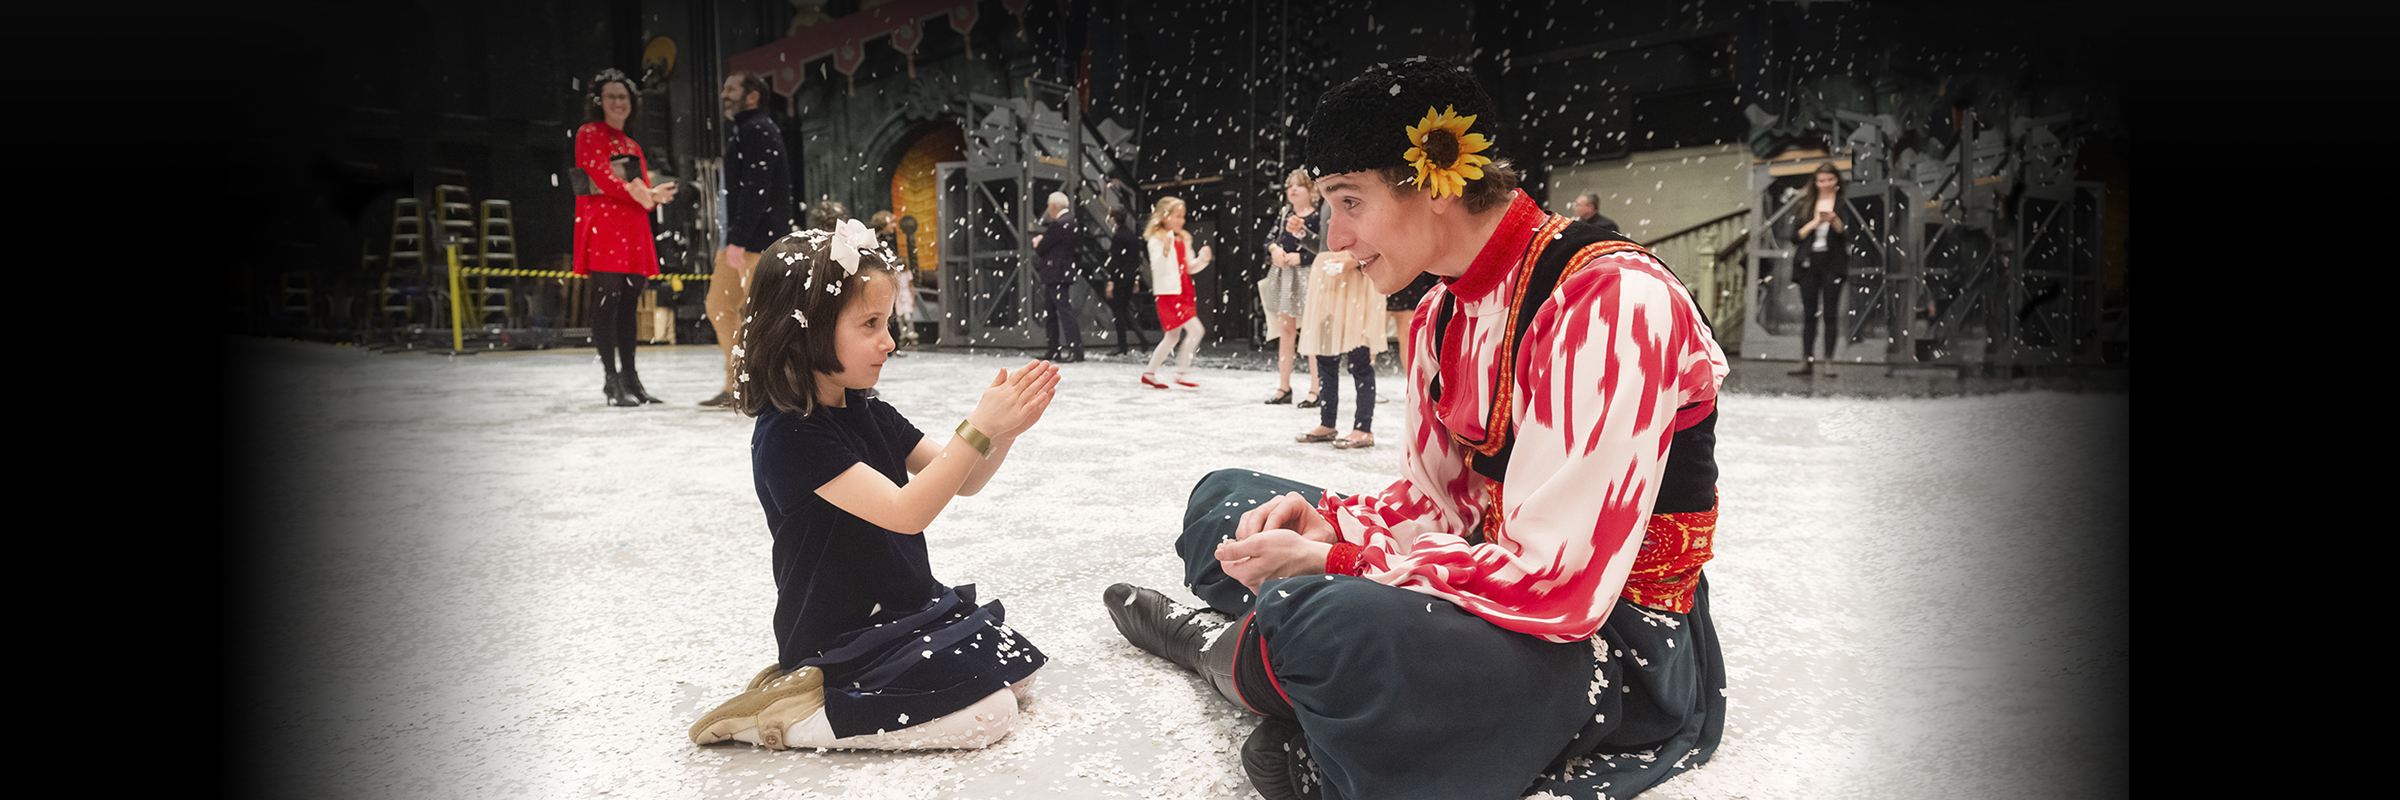 Dancer dressed as Cossack and child sitting on snow covered stage